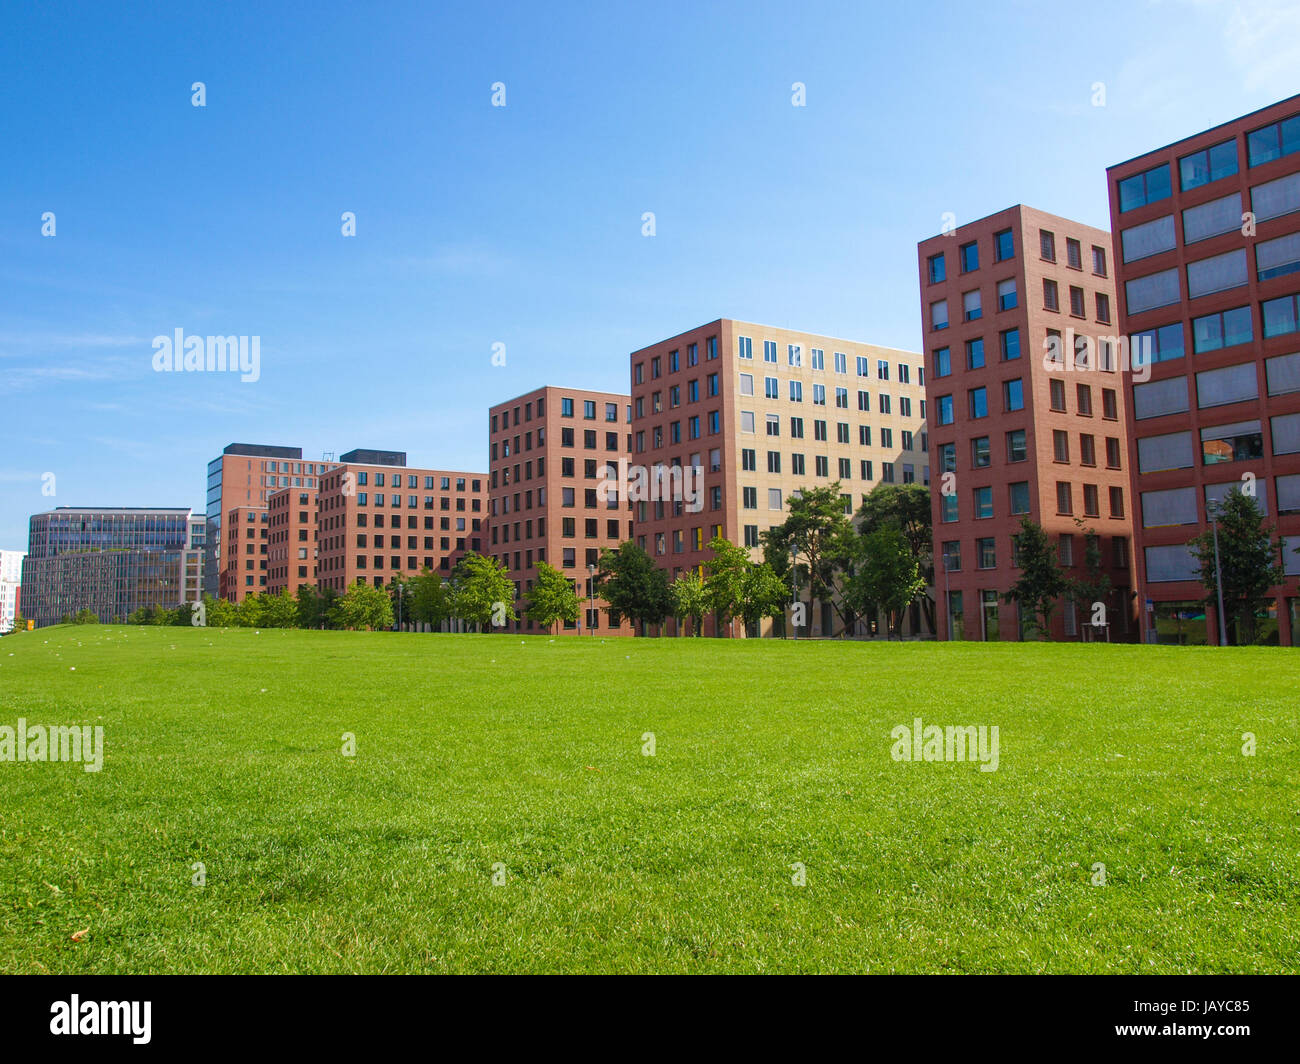 BERLIN, GERMANY - AUGUST 08, 2009: Potsdamer Platz redevelopment area has been the largest building site in Europe - Stock Image